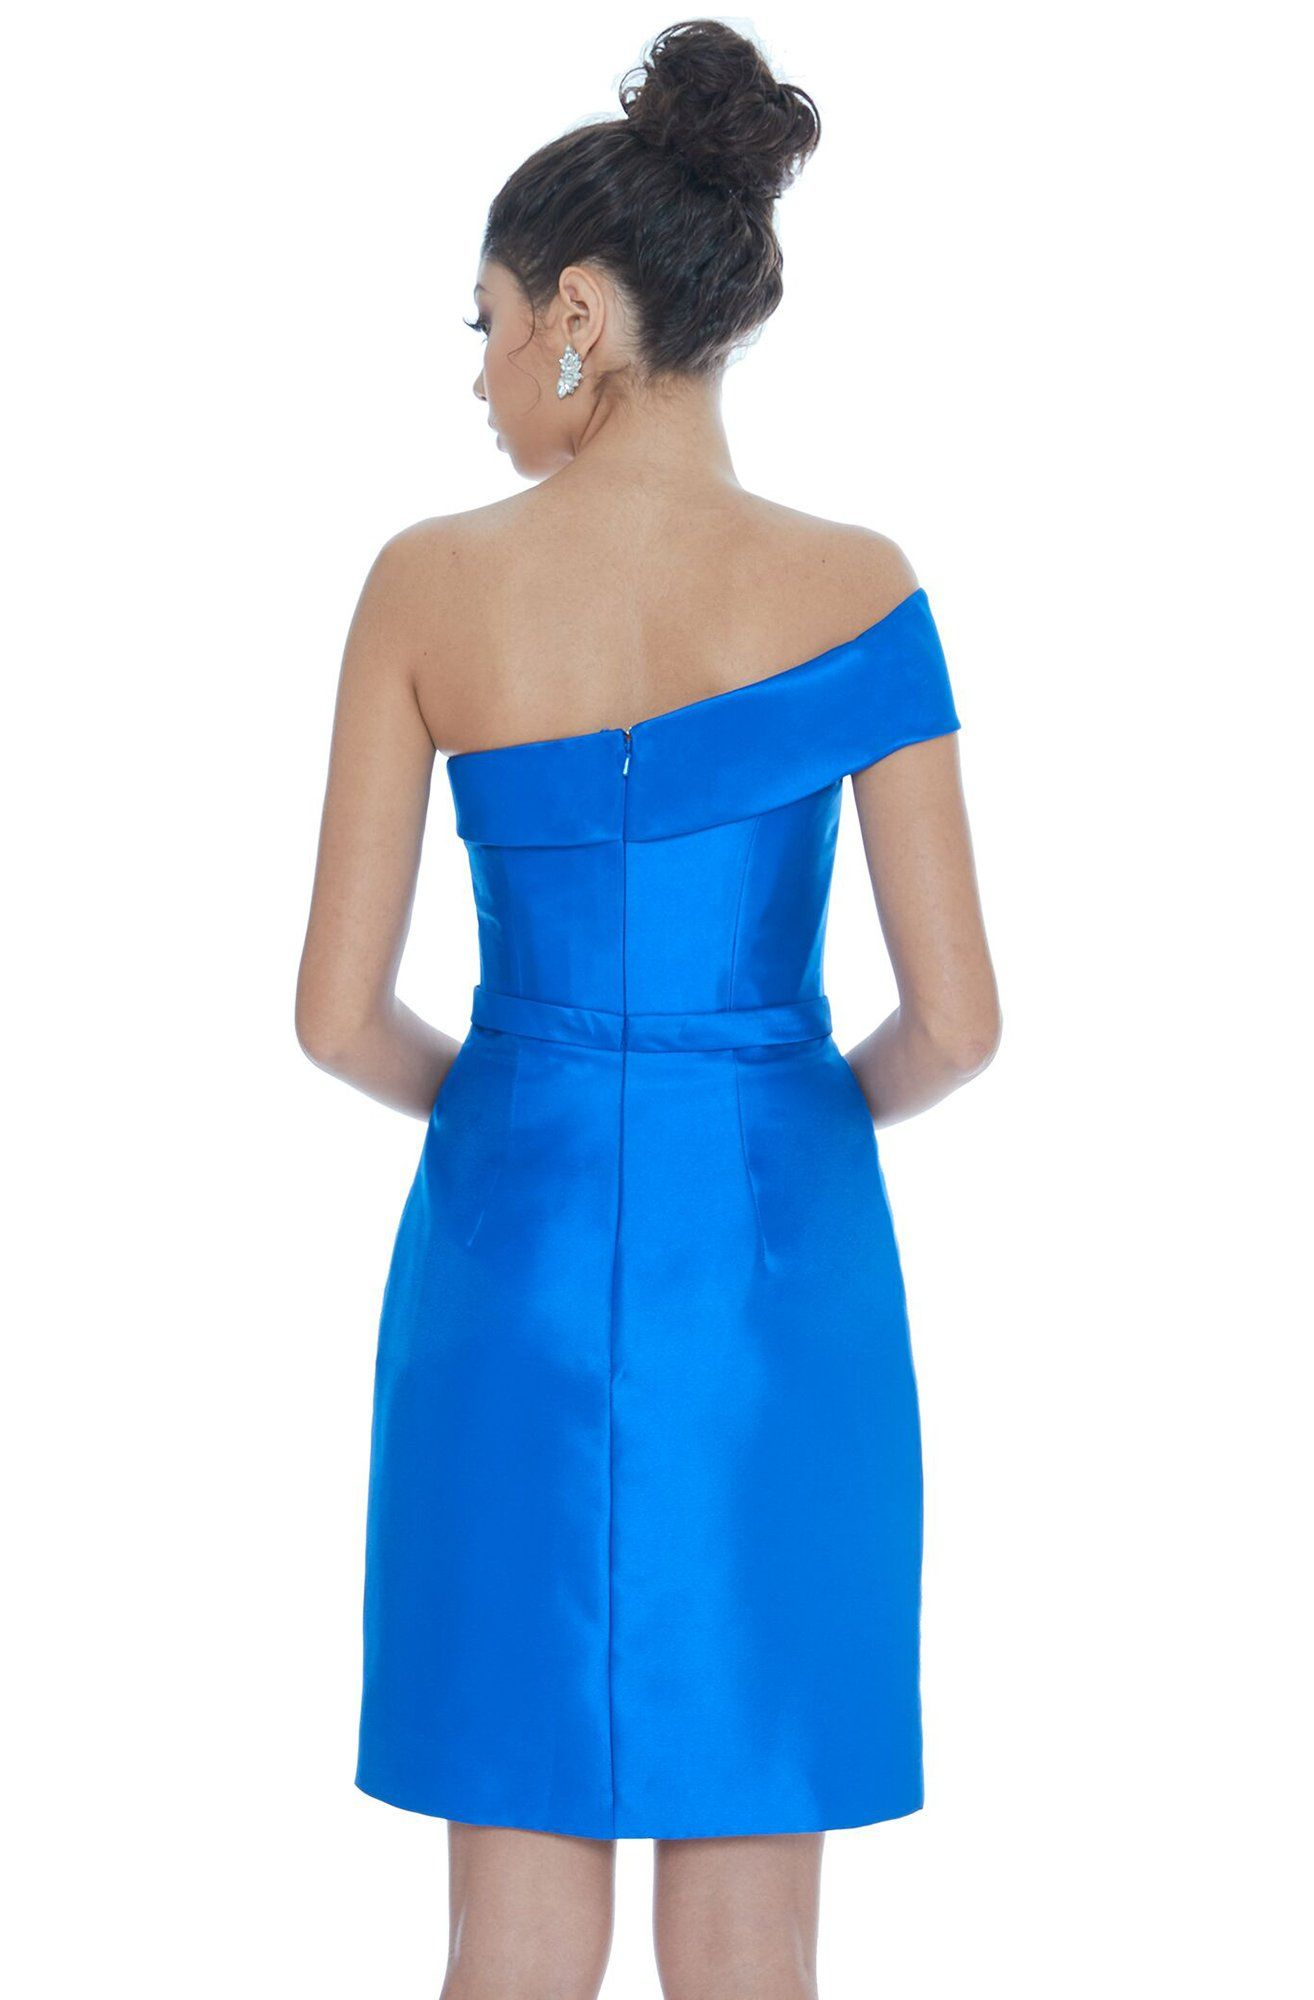 Ashley Lauren 4215 One Shoulder Column Cocktail Dress